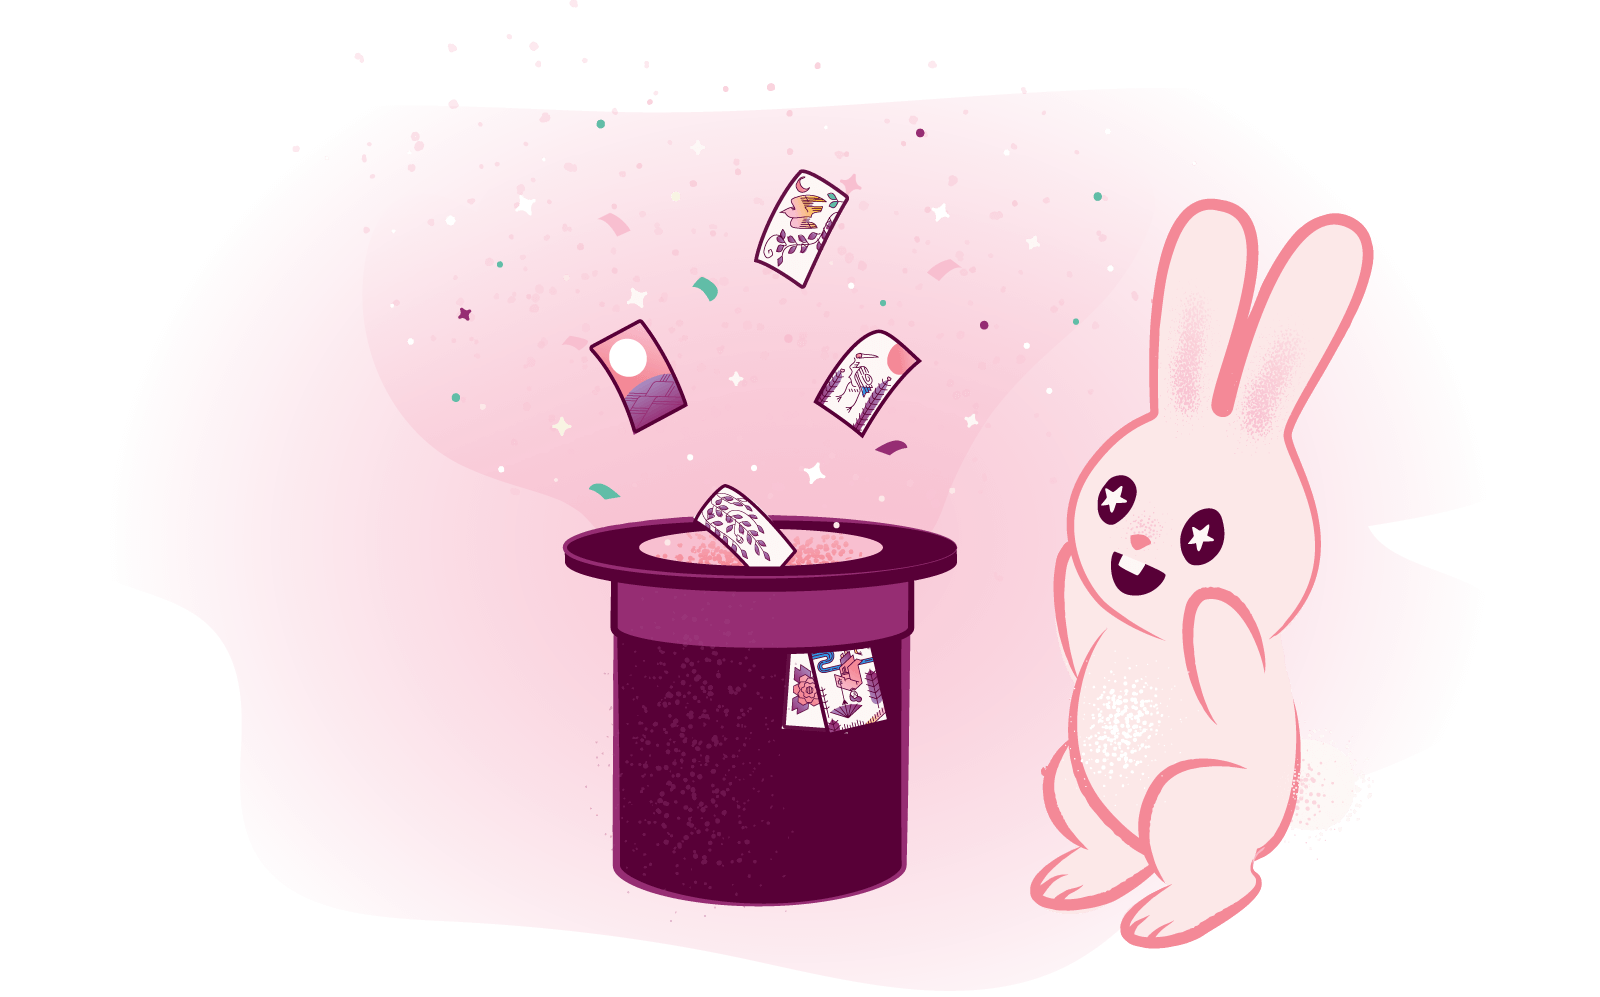 a rabbit gasps as hanafuda playing cards fly from a magic hat